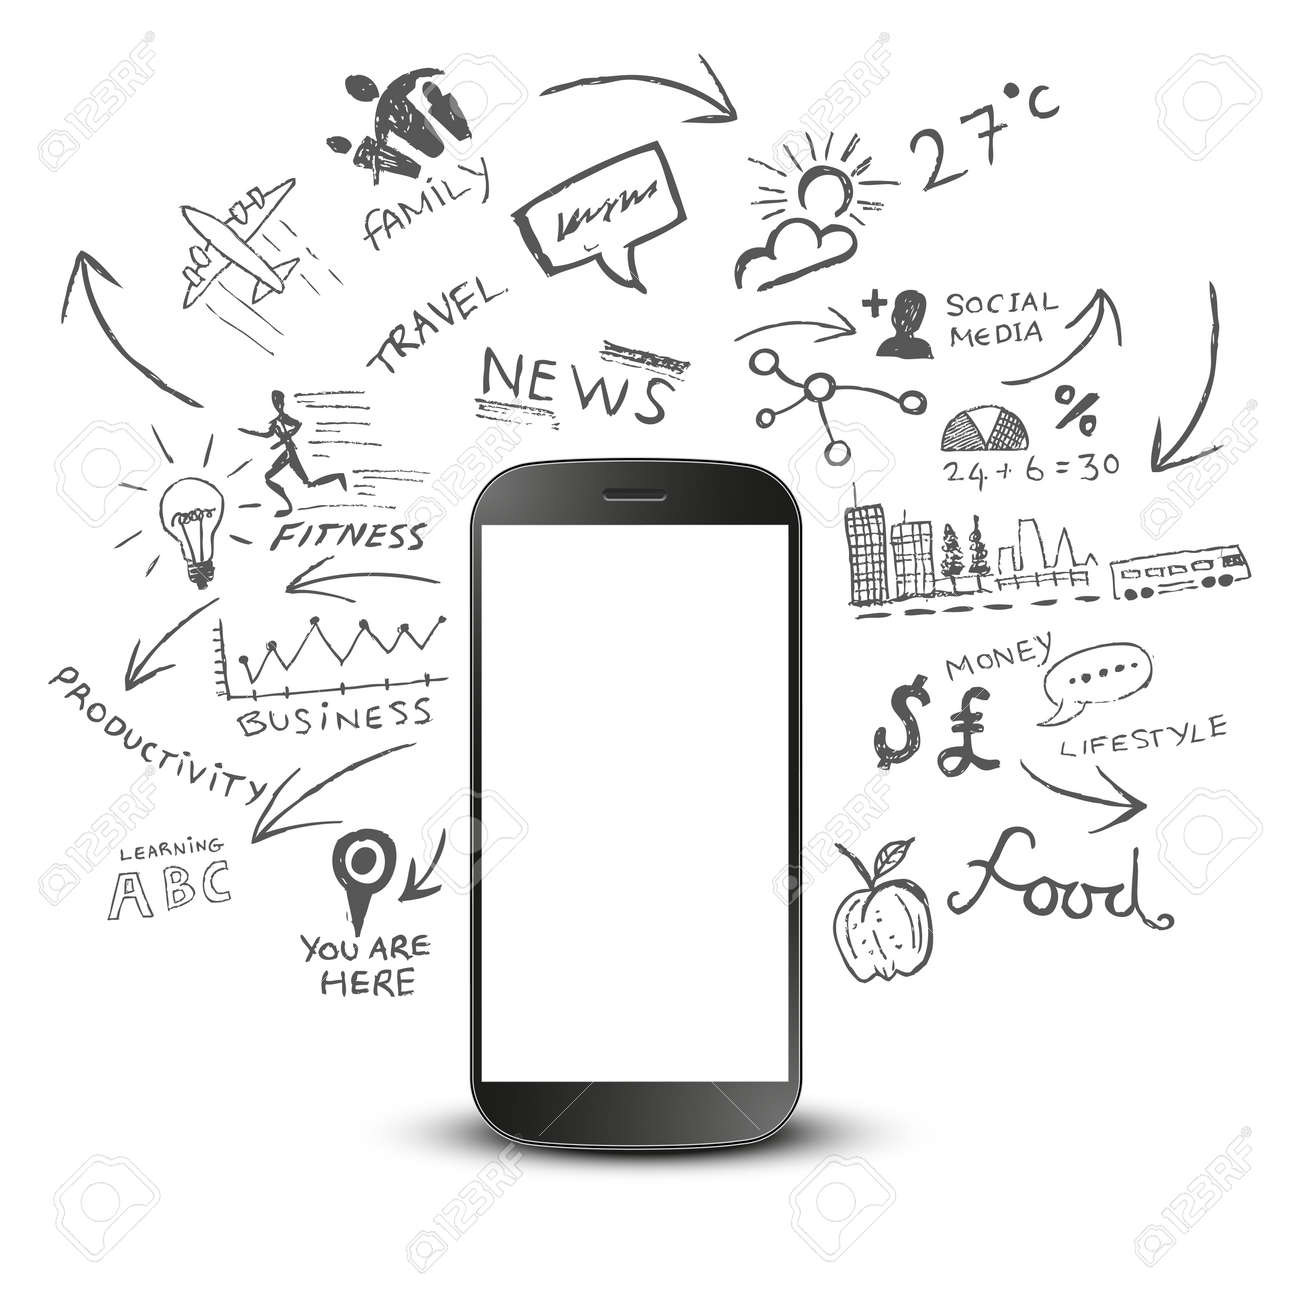 Mobile Productivity. Modern mobile device with communication doodles. Stock Vector - 23083550